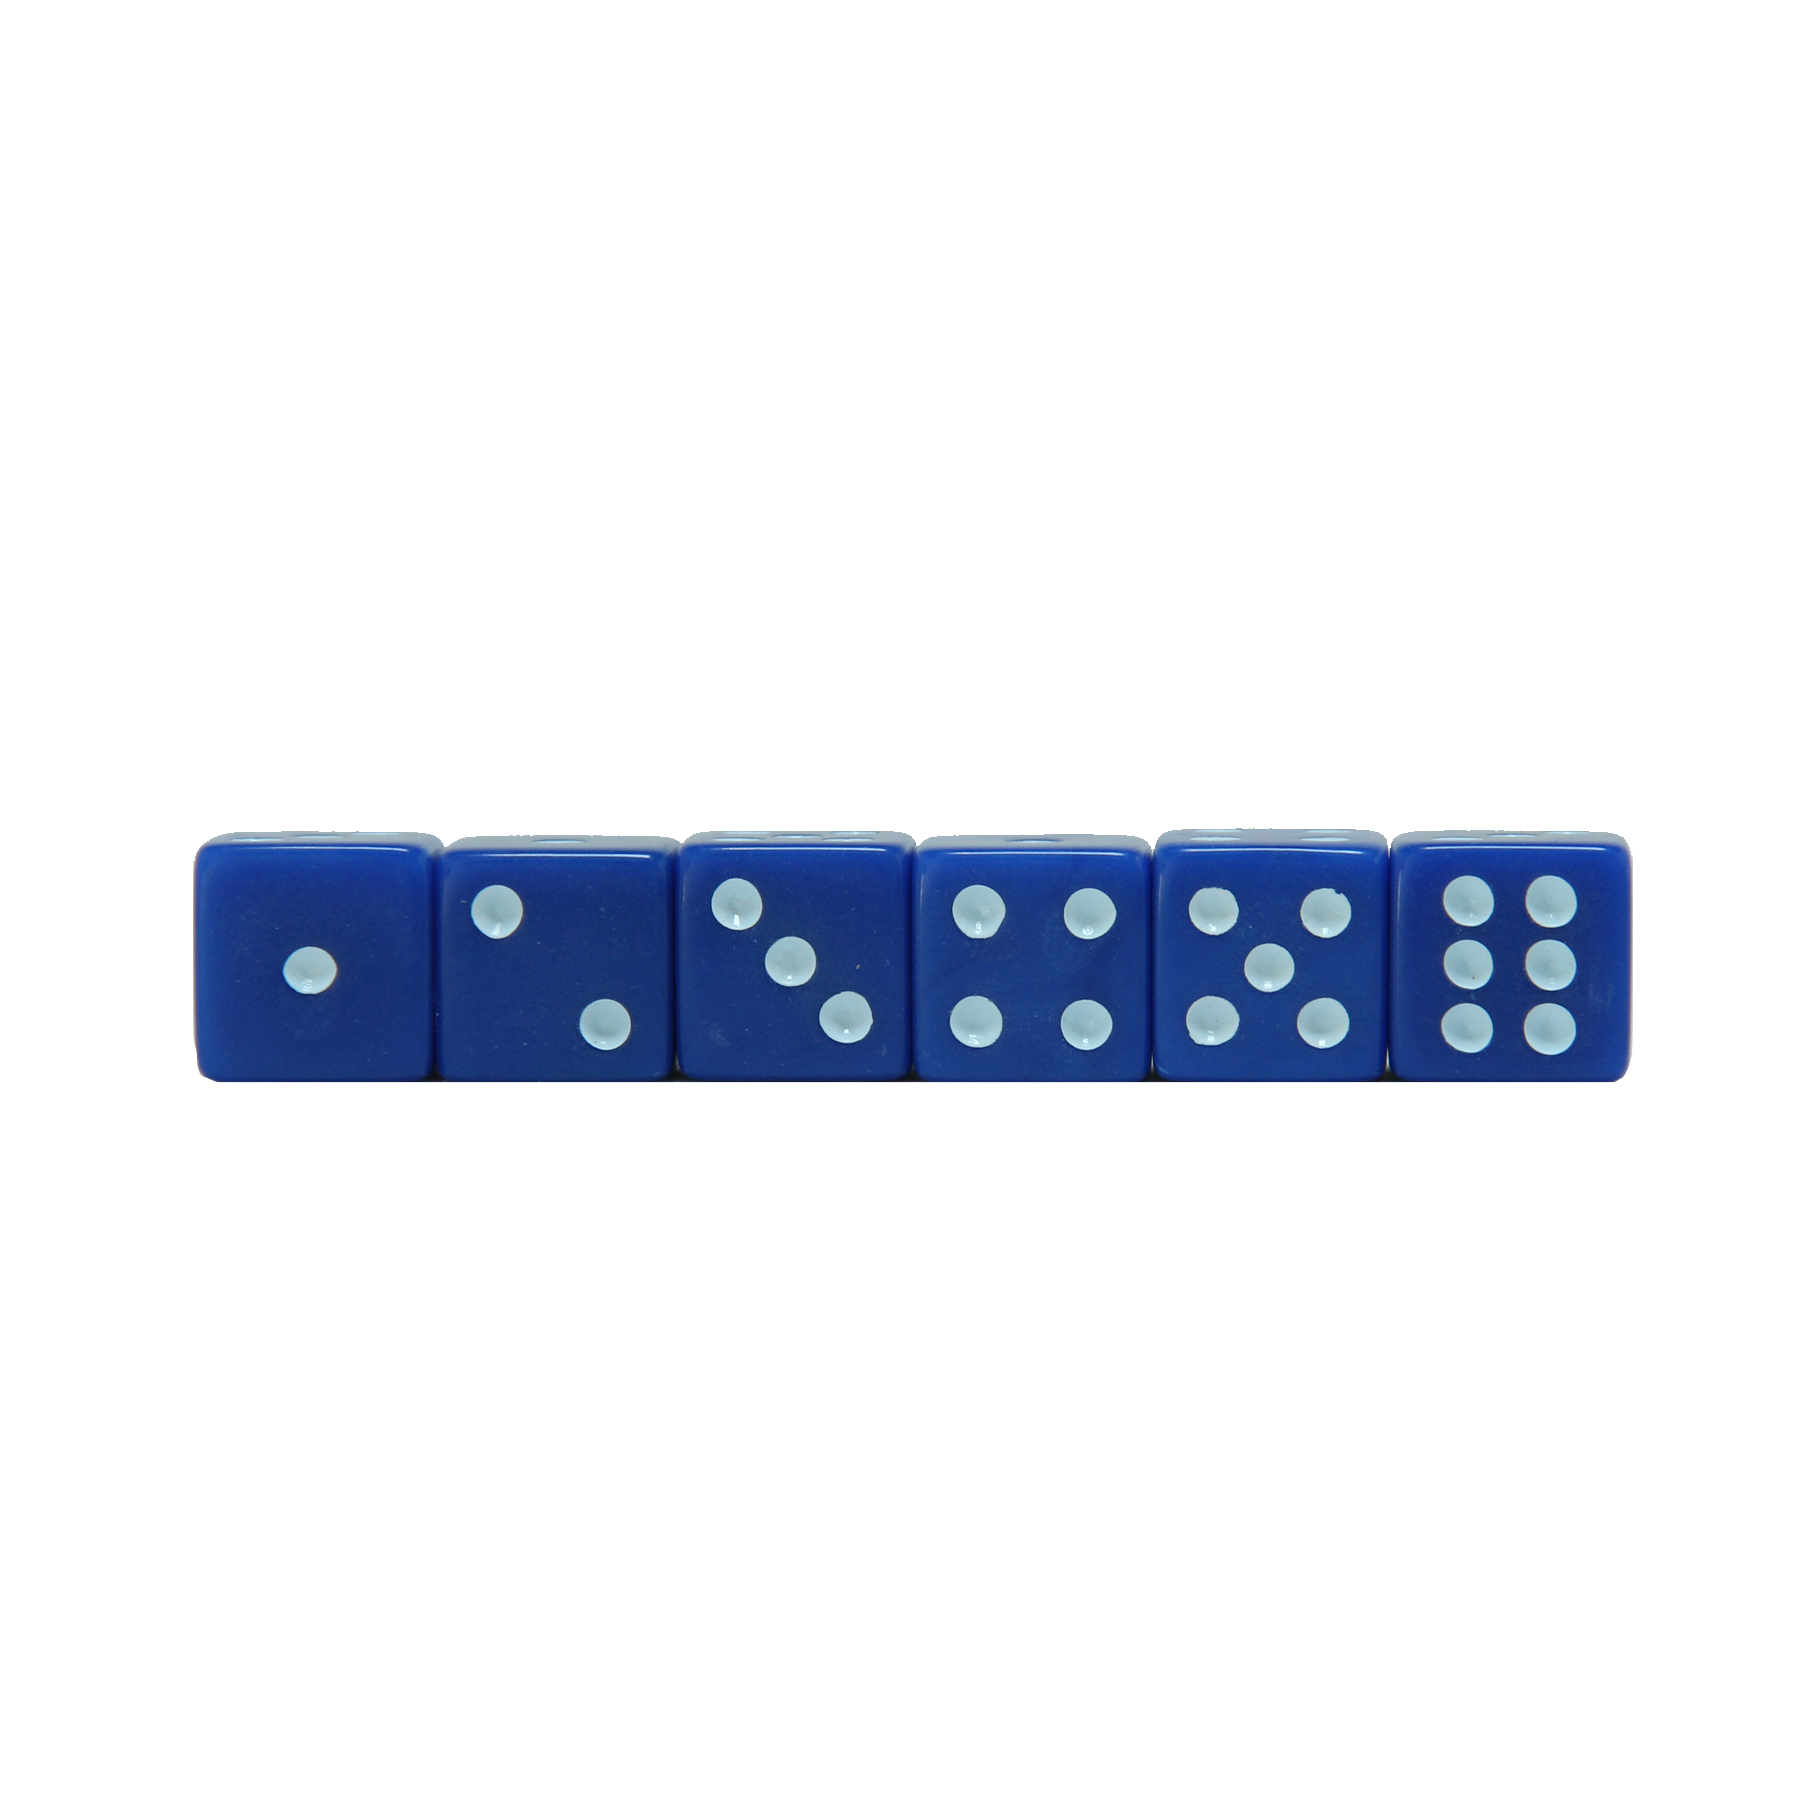 Blue Square Cornered Dice 100 Pack Wood Expressions